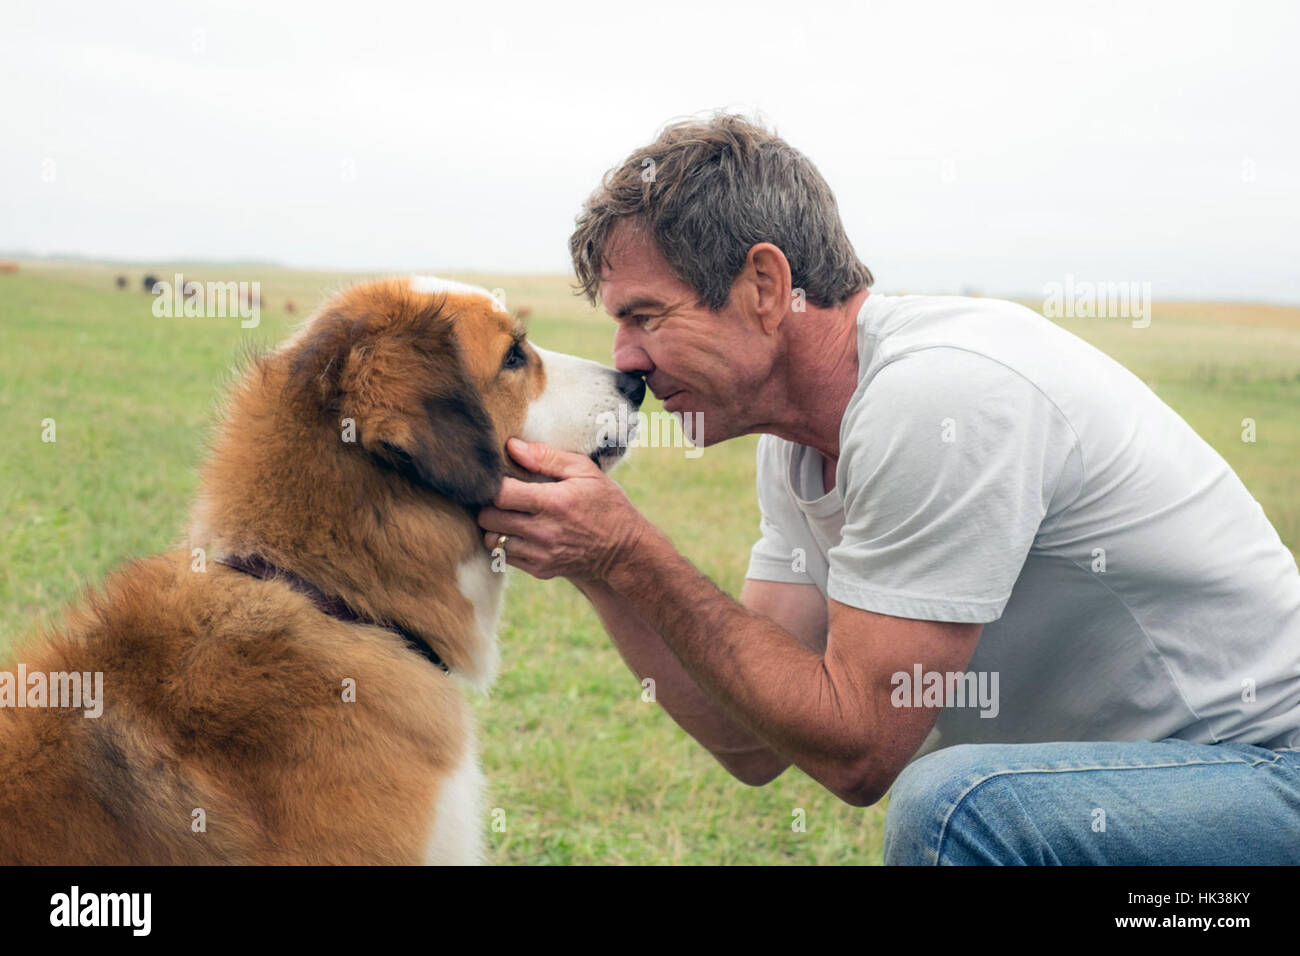 A Dog's Purpose is an upcoming American comedy-drama film directed by Lasse Hallström and written by W. - Stock Image